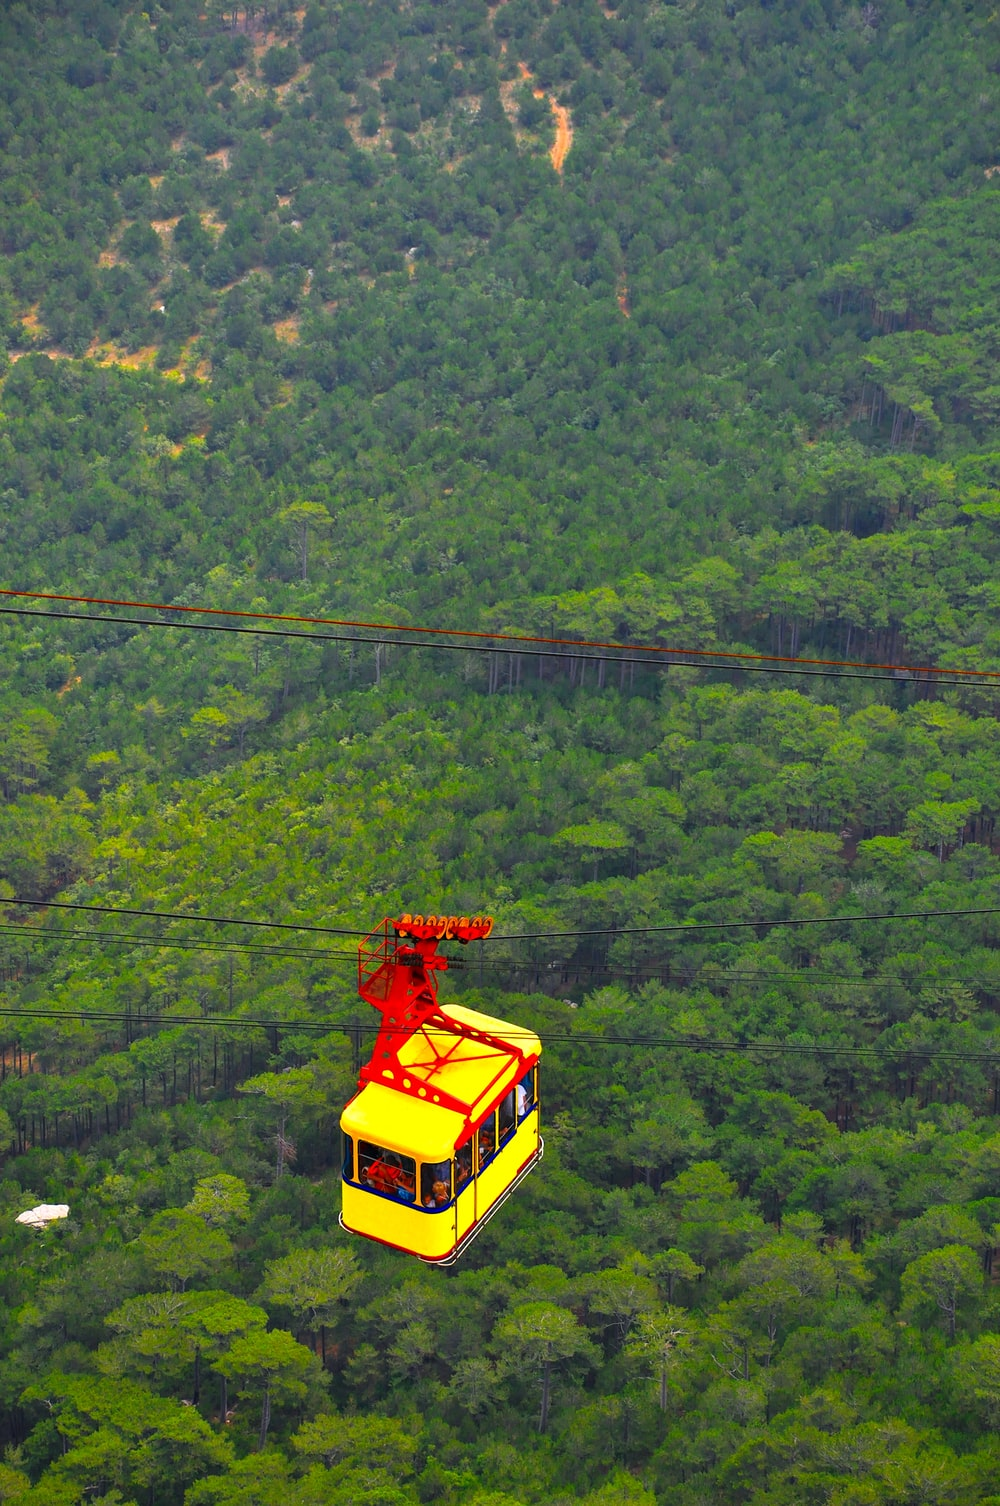 yellow cable car over green trees during daytime